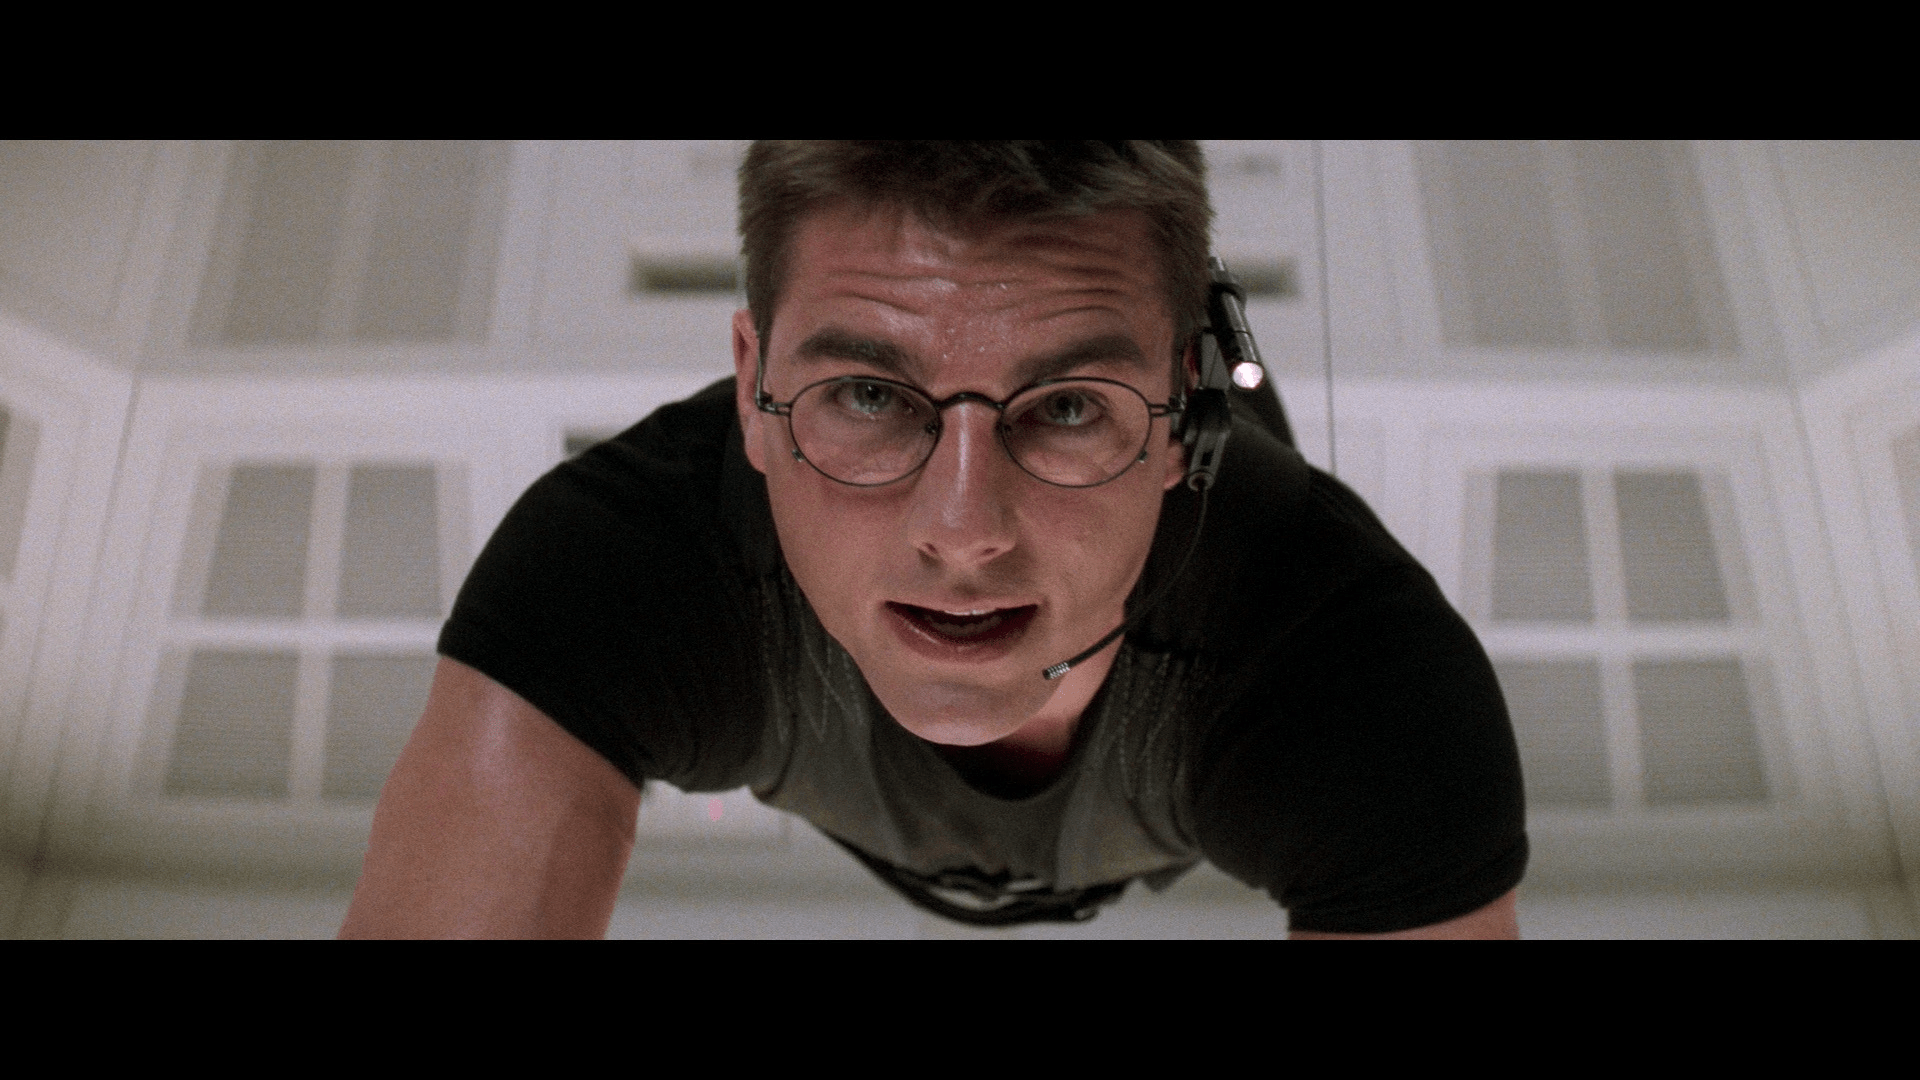 Mission Impossible turns 25 with an improved Blu-ray [Review] 7